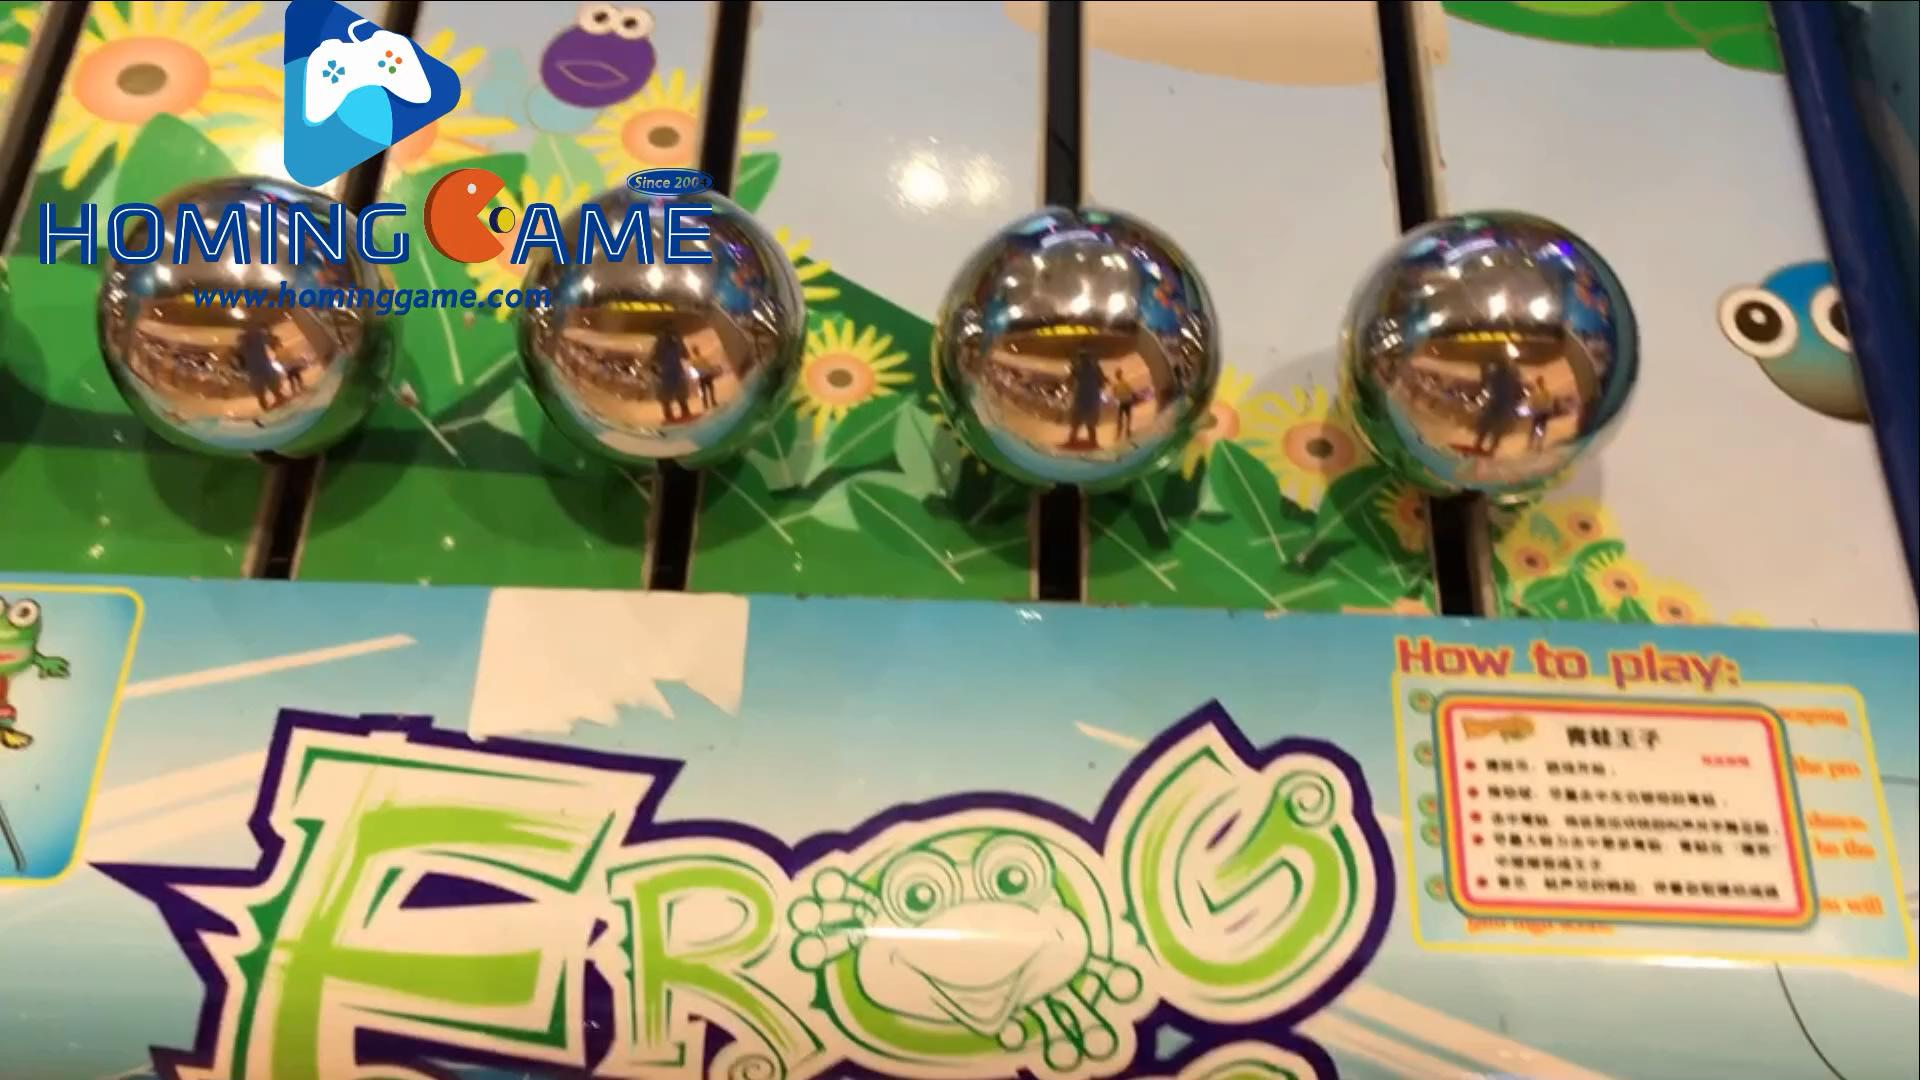 frog princes,frog princes redemption game machine,redemption ticket game machine,lottery game machine,frog princes lottery redemtion game machine,game machine,arcade game machine,coin operated game machine,amusement park game equipment,kids game machine,kids lotery game machine,kids amusement park game equipment,kids game equipment,kids arcade game machine,children game machine,children arcade game machine,game room game machine,game zone game machine,entertainment game machine,family entertainmnet game machine,hominggame,www.gametube.hk